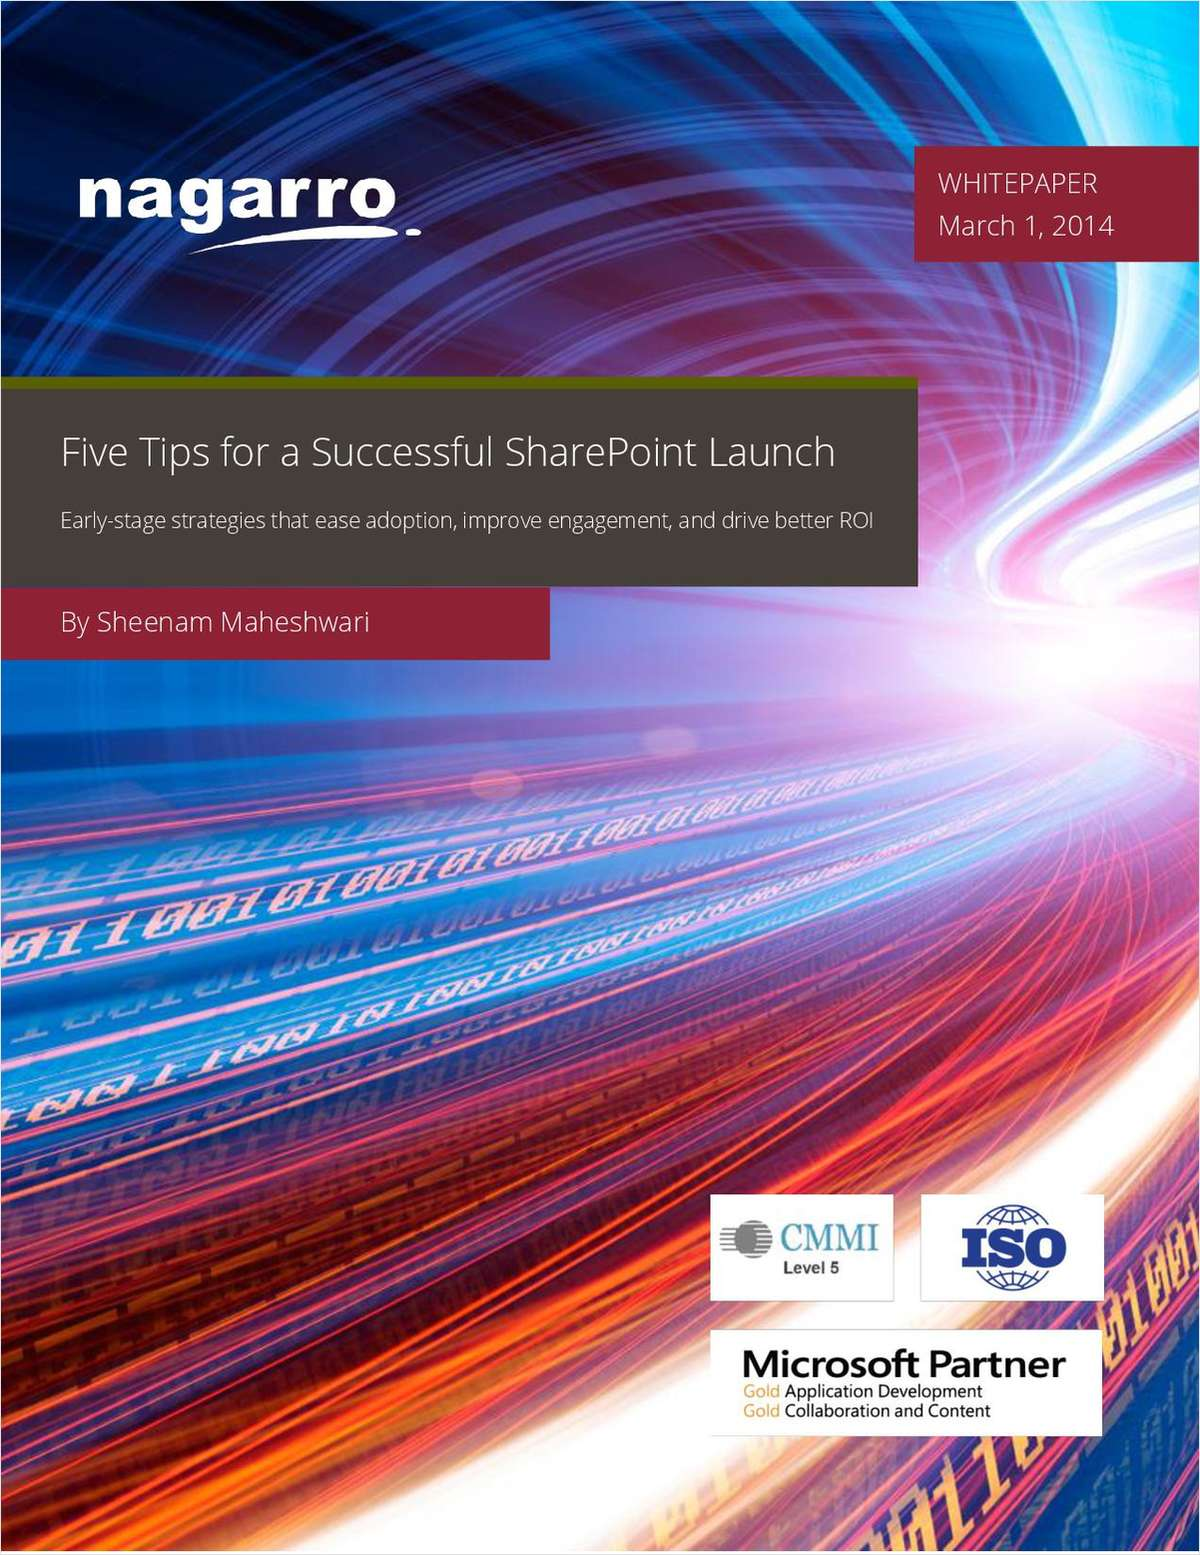 Five Tips for a Successful SharePoint Launch